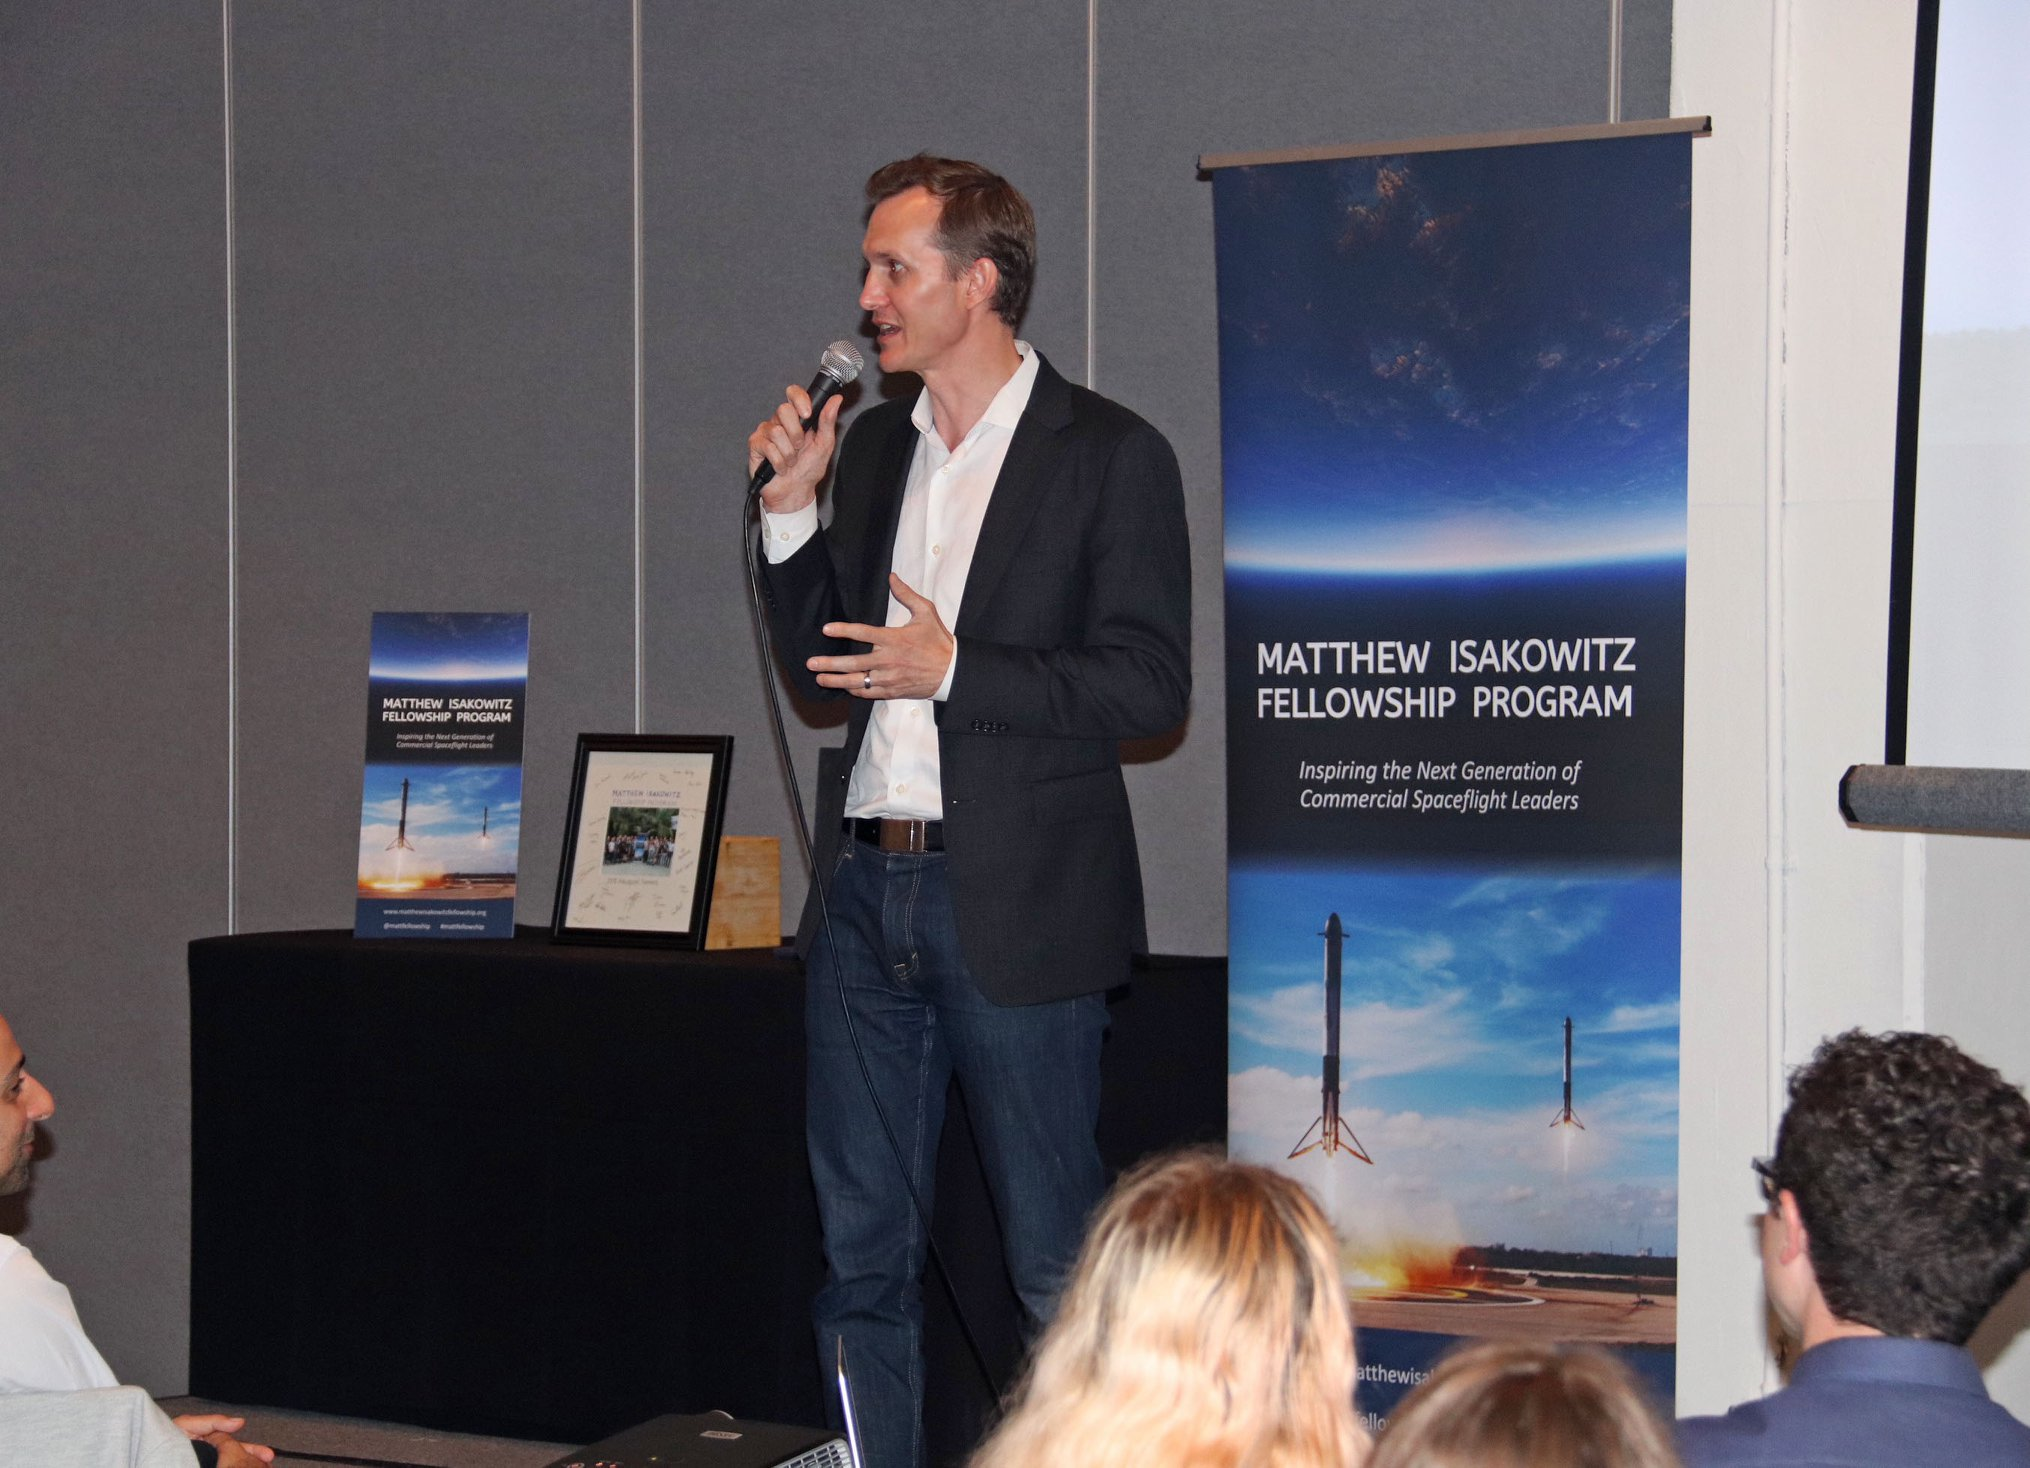 George Whitesides (CEO of Virgin Galactic and The Spaceship Company) delivering the keynote address at the 2018 Summit Dinner.